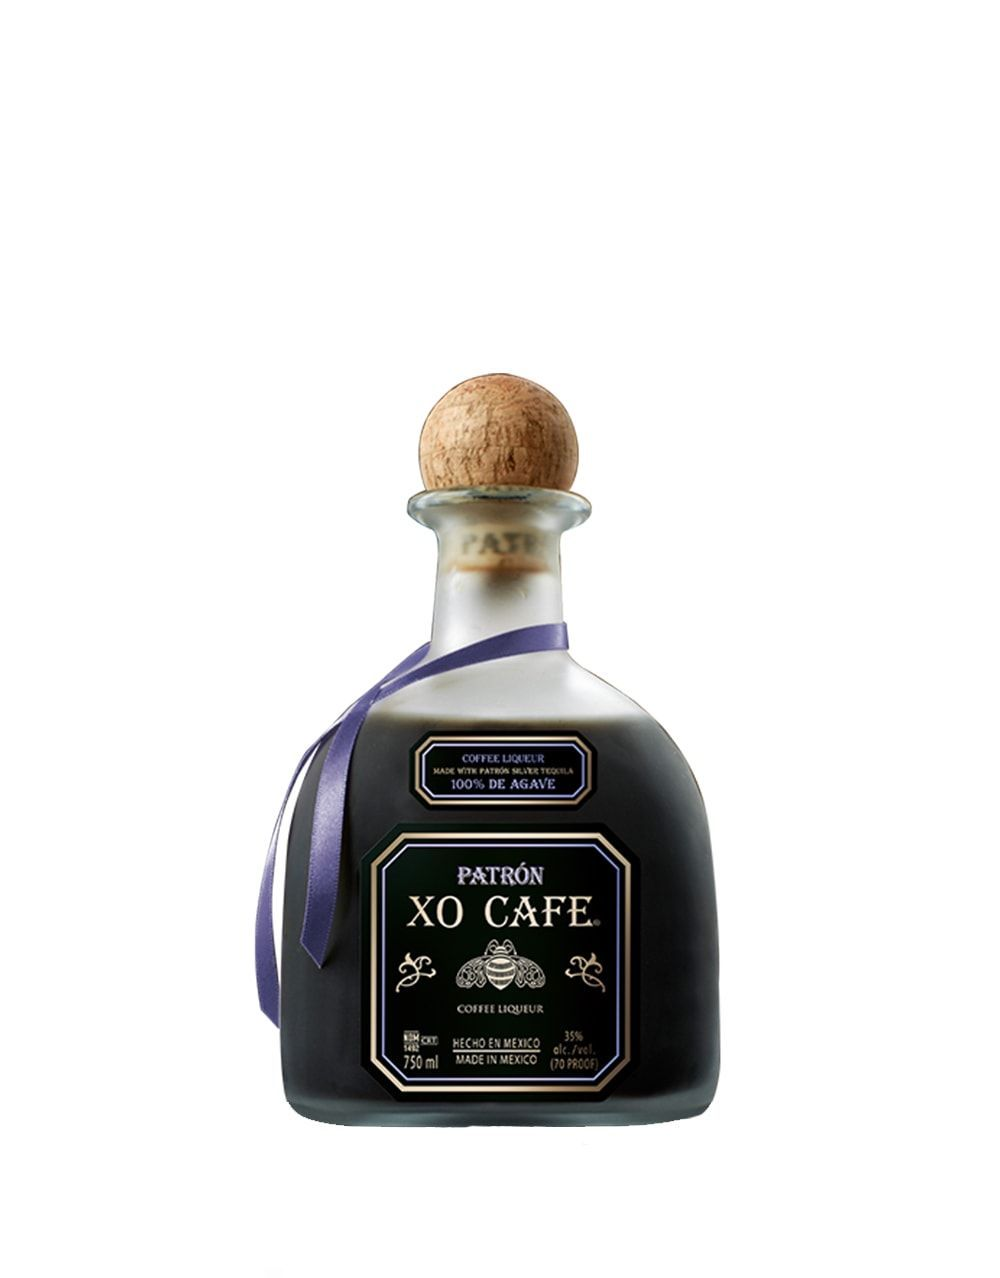 $30 - Patron xo cafe   I love tequila and I love coffee… So this is the best of both worlds! This tequila is truly incredible. Perfect for someone who loves tequila and coffee as much as I do - DM me for my address ;)